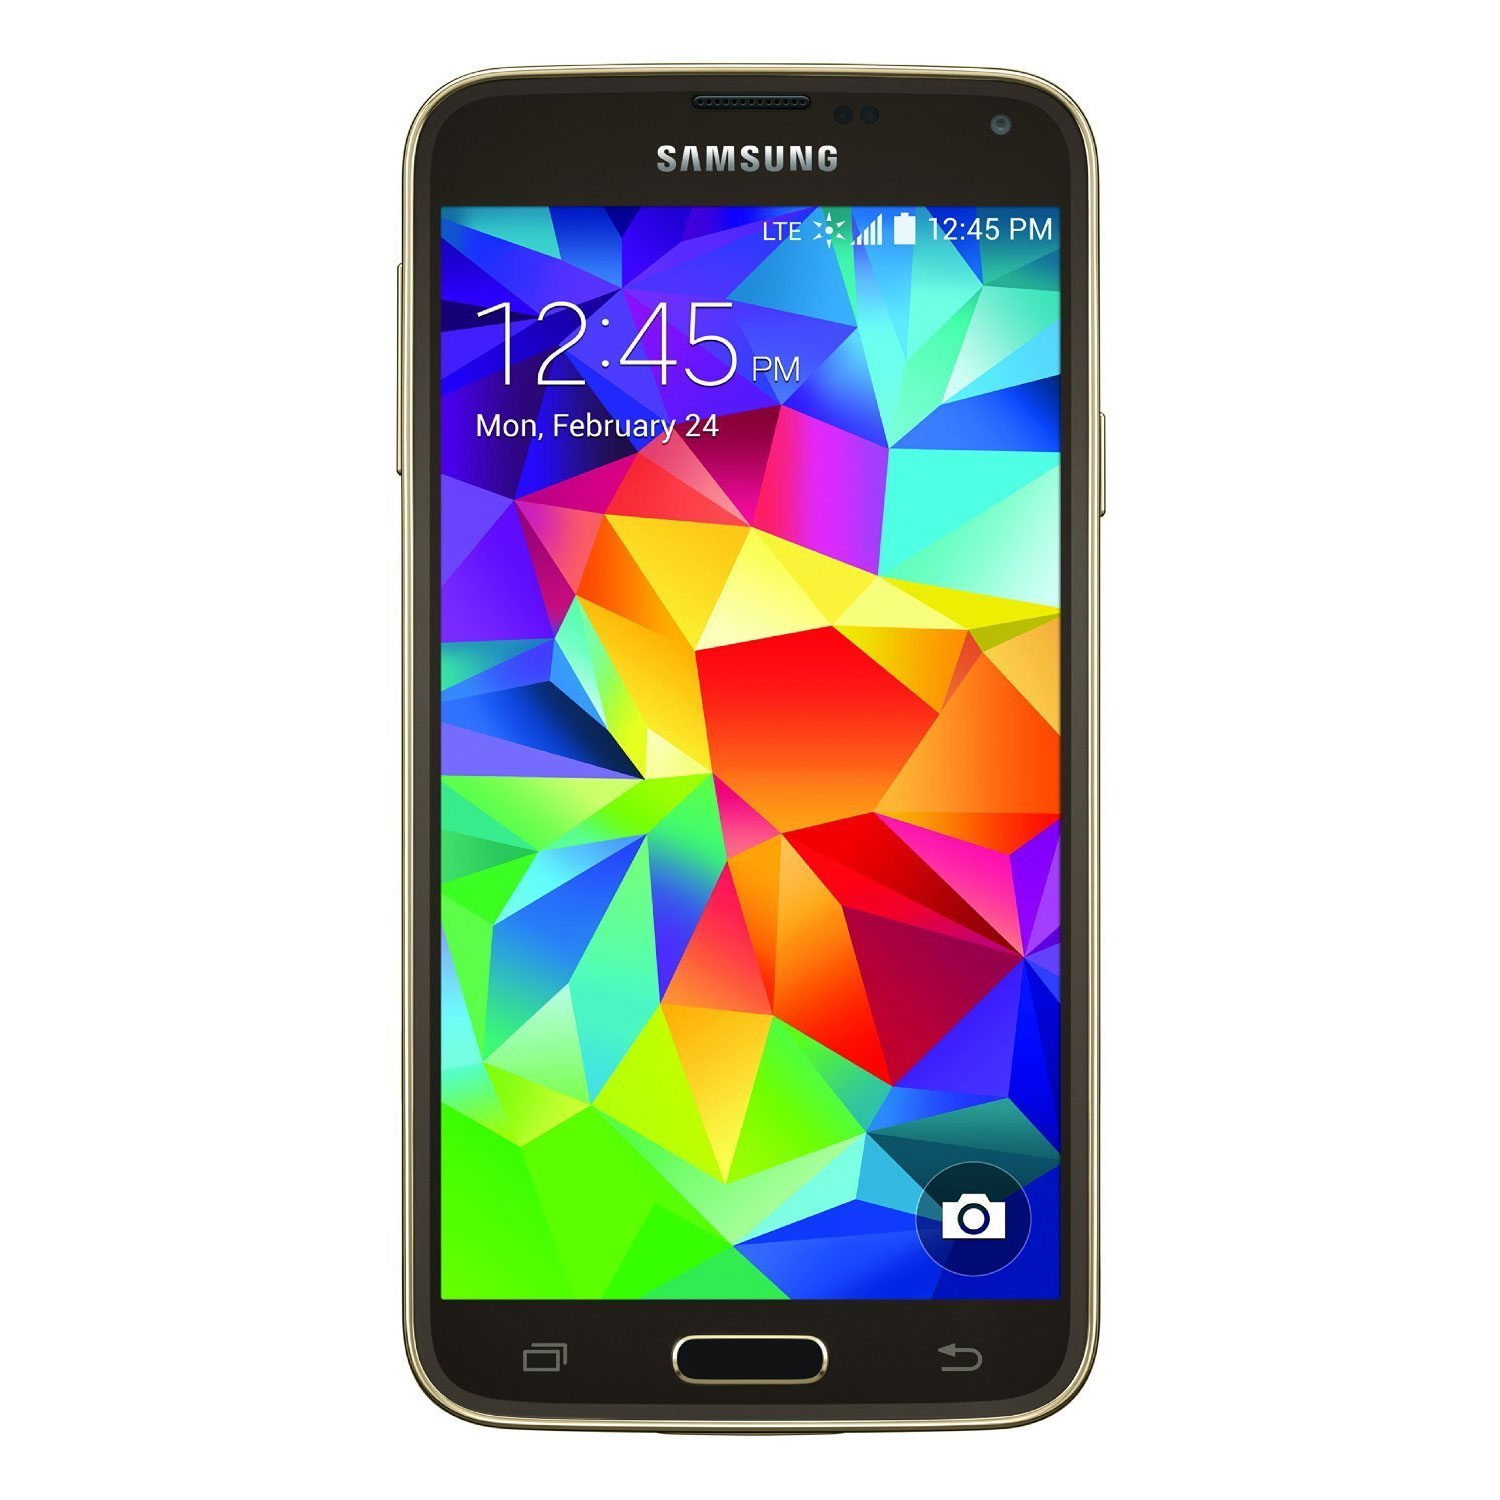 Samsung Galaxy S5 G900V Verizon Wireless 5.1'' AMOLED Display 2GB RAM 16GB Internal 16MP Camera Phone - Copper Gold